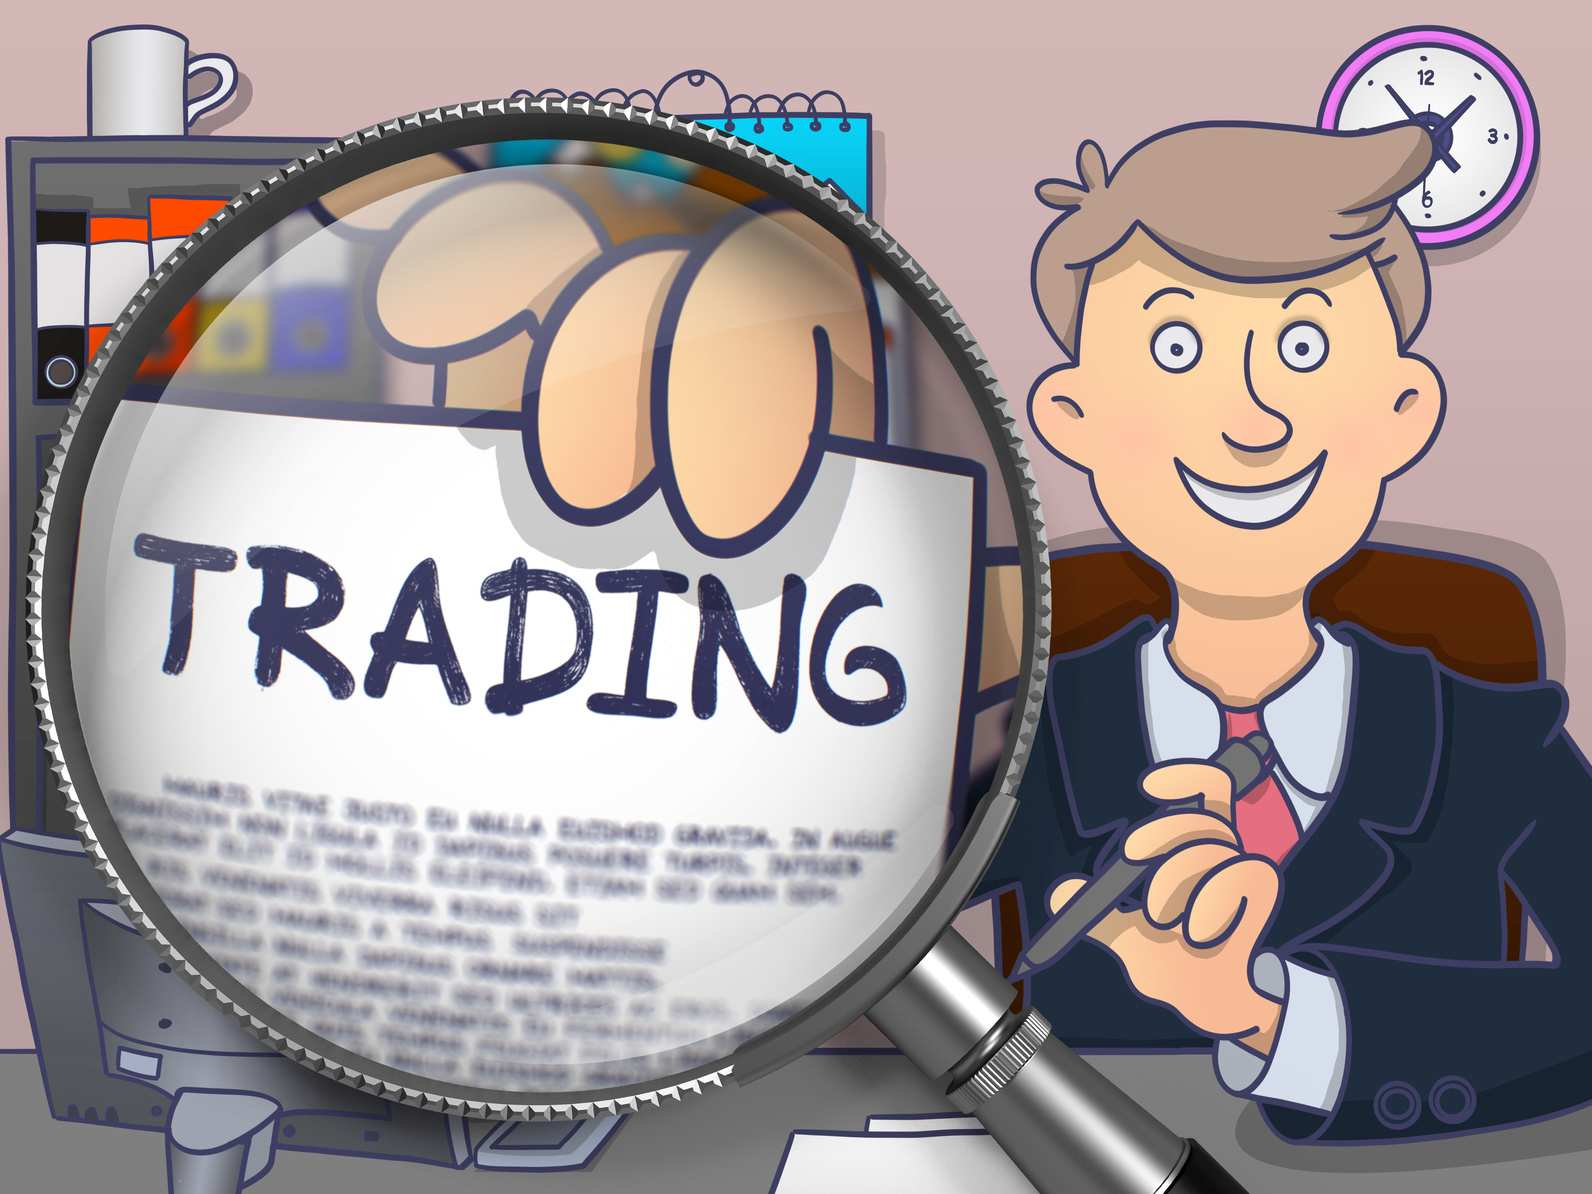 Trading. Text on Paper in Man's Hand through Magnifying Glass. Multicolor Doodle Illustration.